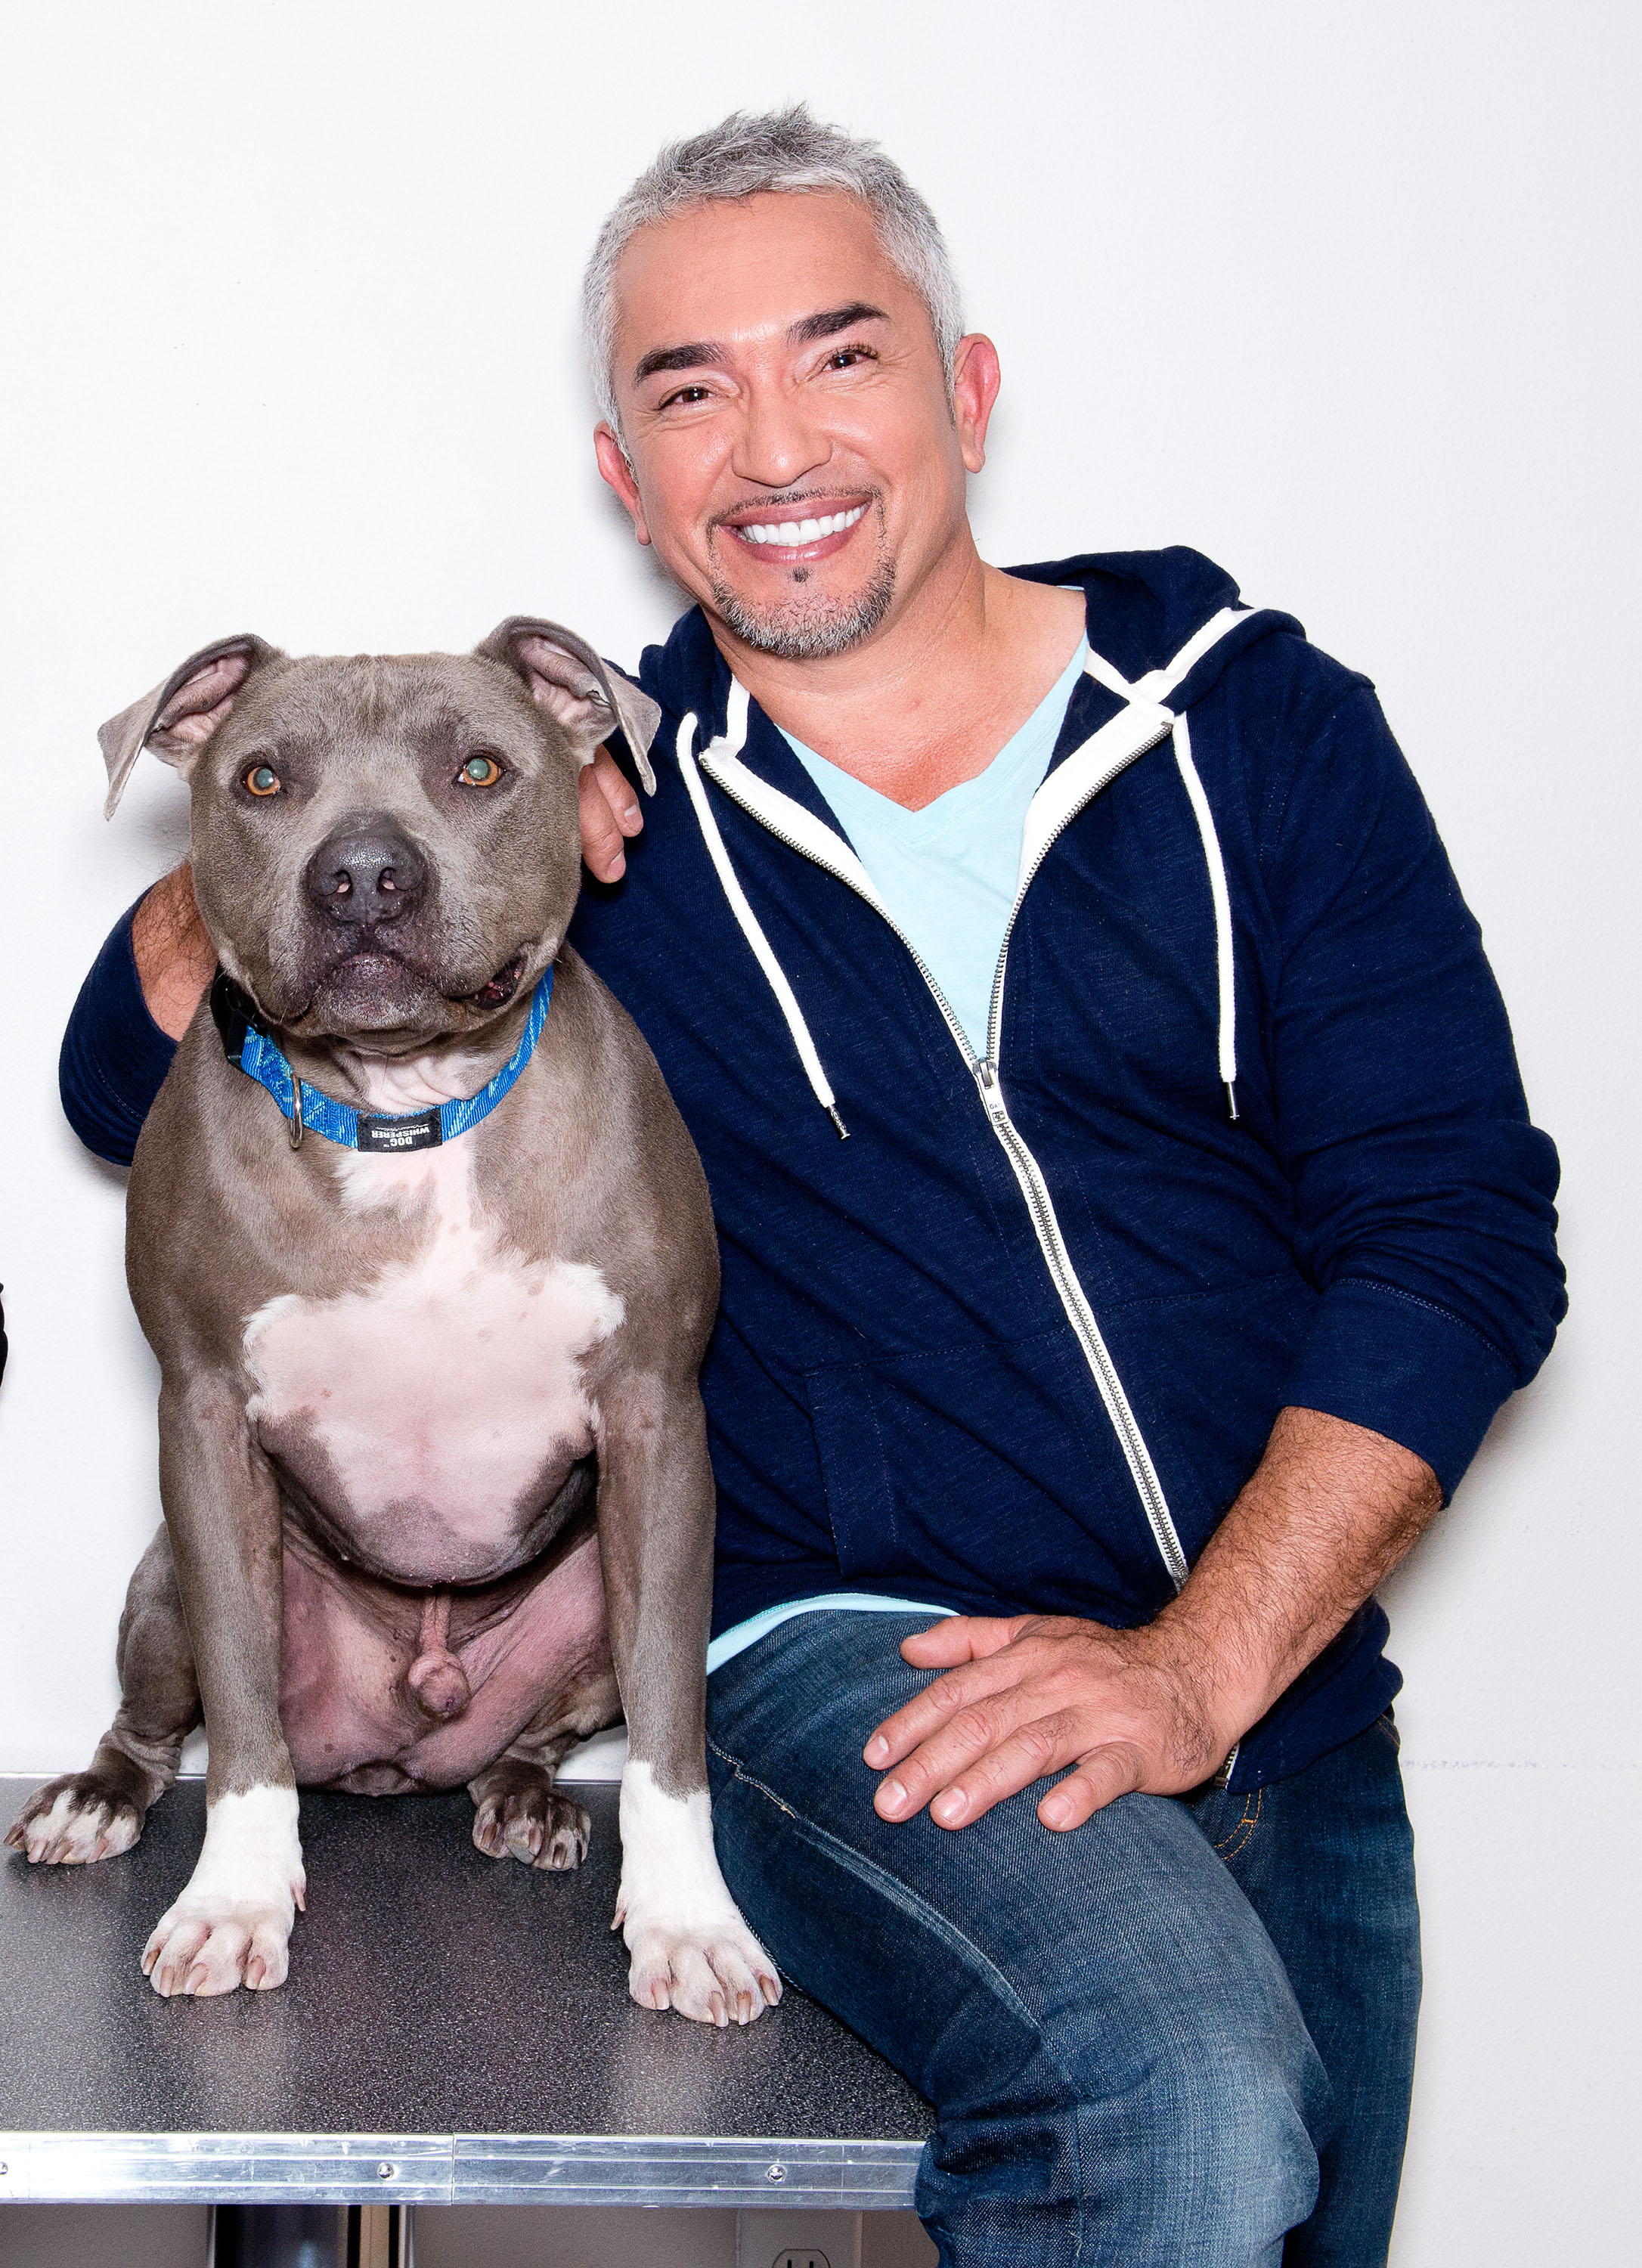 Dog Whisperer Cesar Millan poses with his pit bull Junior after his performance at Route 66 Casinos Legends Theater on April 11, 2014 in Albuquerque, New Mexico.